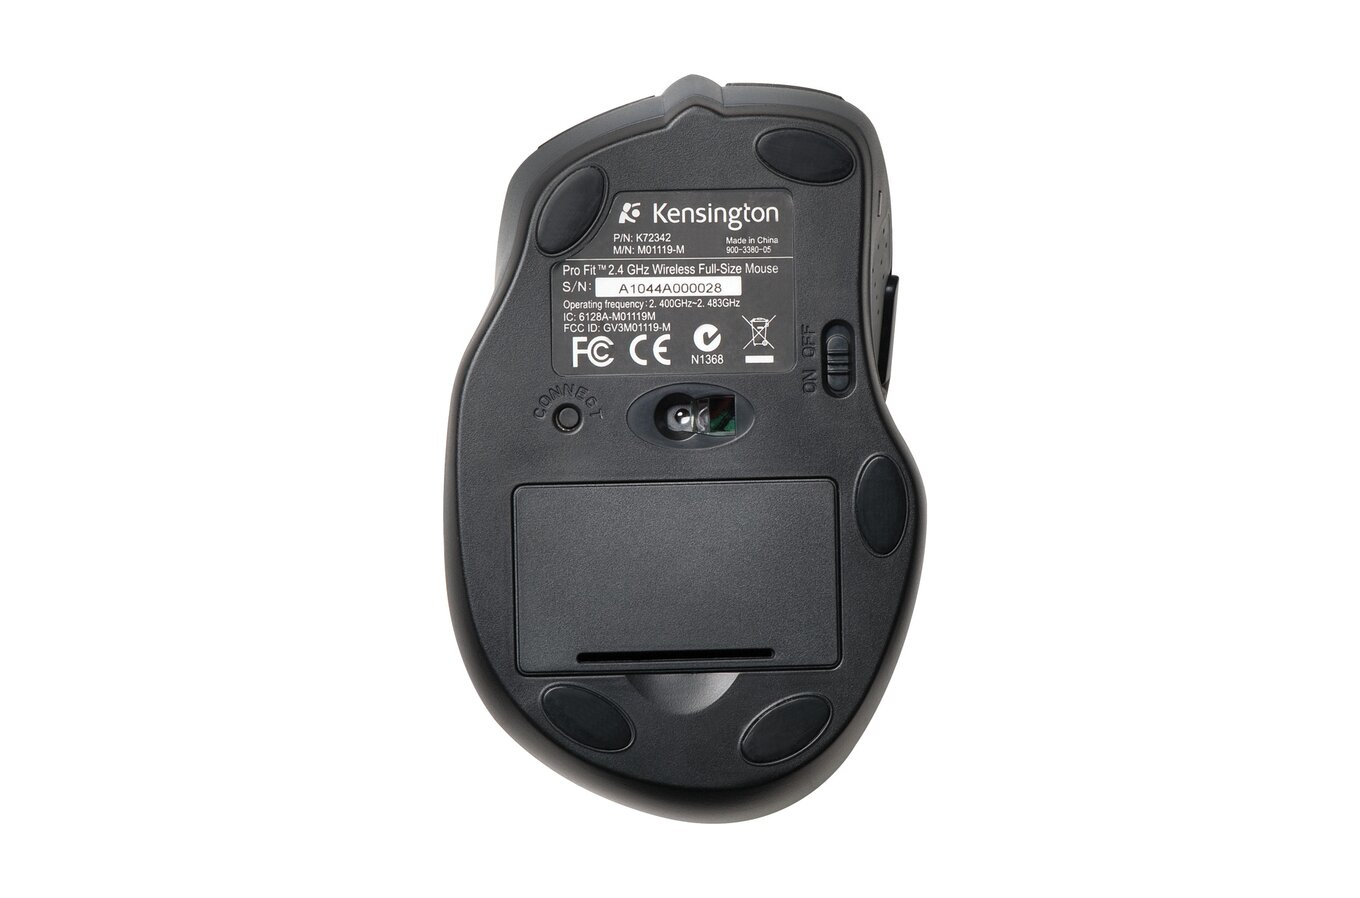 Pro Fit Full Size Wireless Mouse